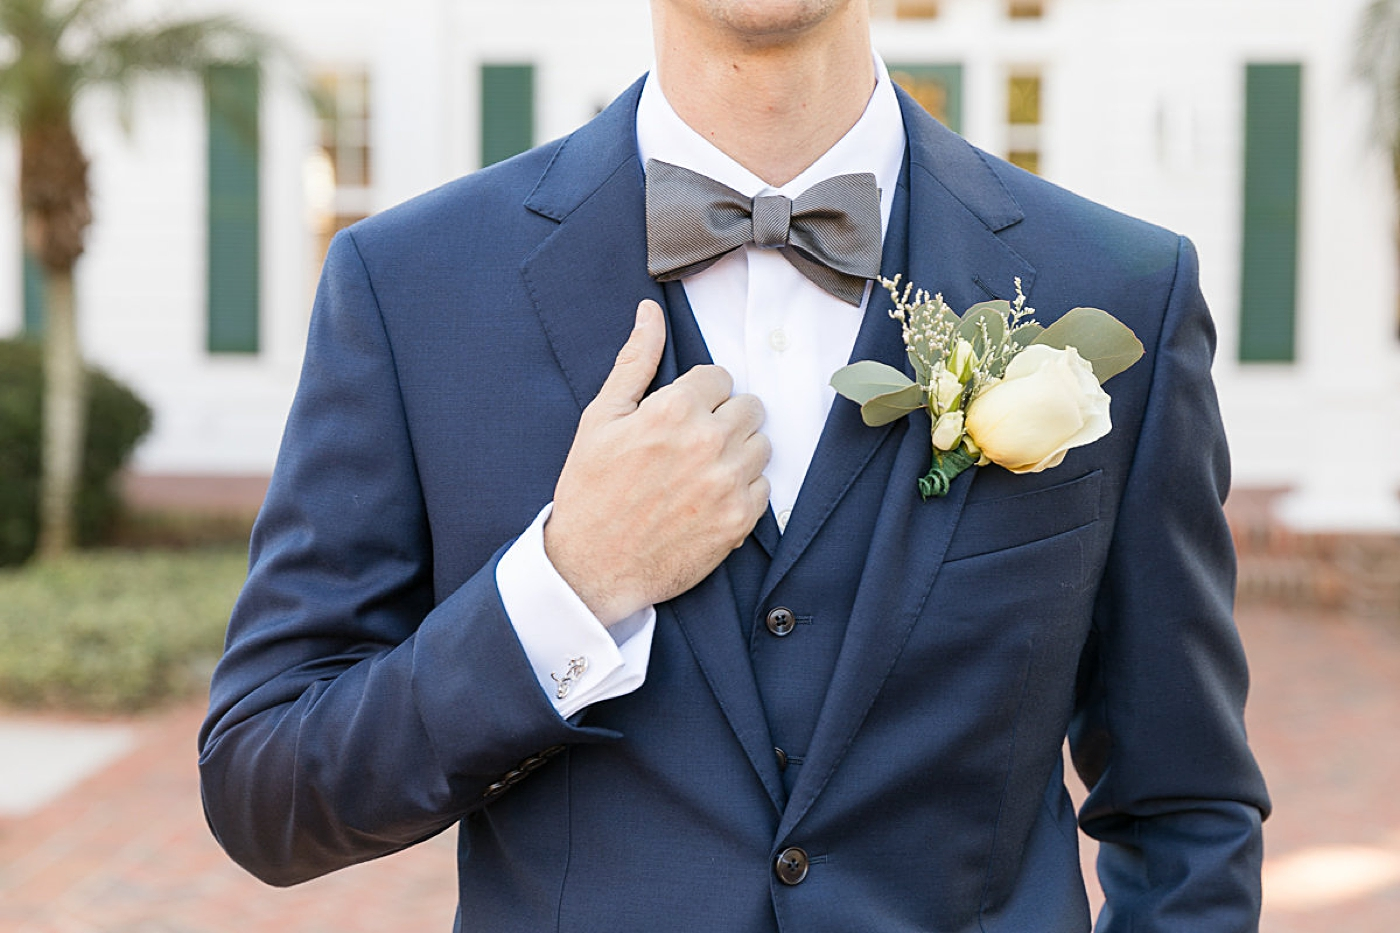 southern groom attire and bowtie